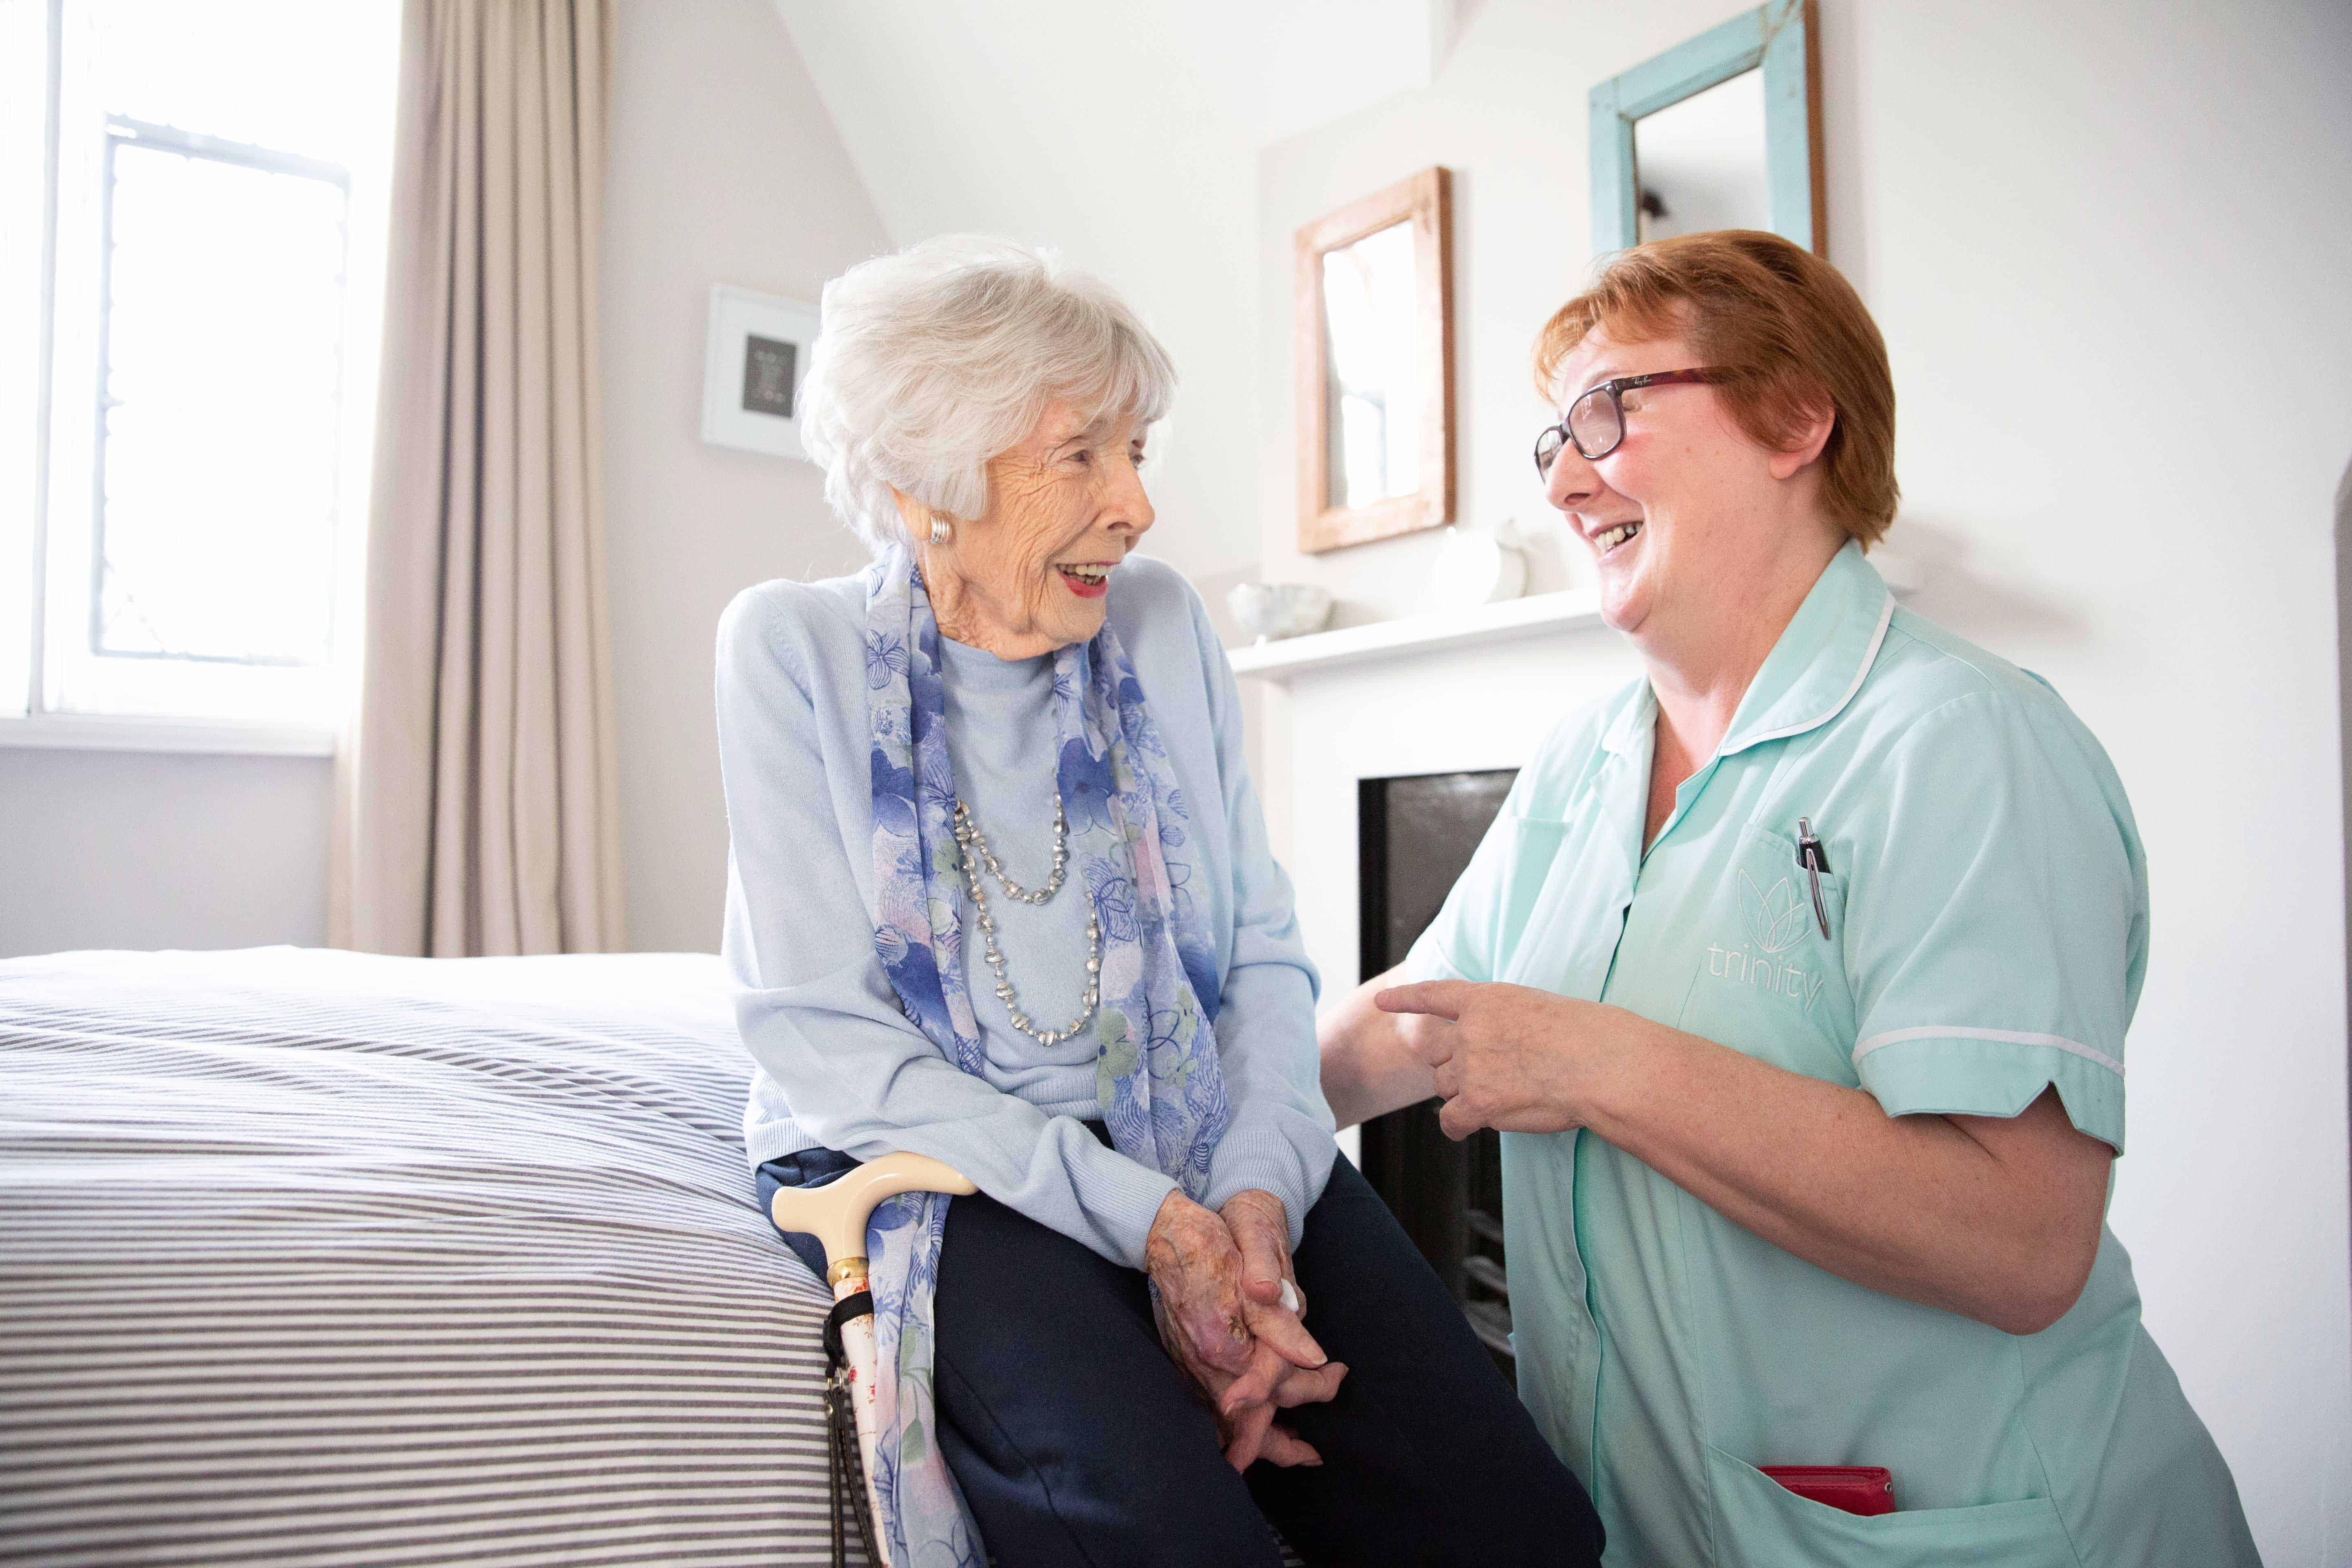 Our Trinity Carer assisting an elderly lady in the winter months